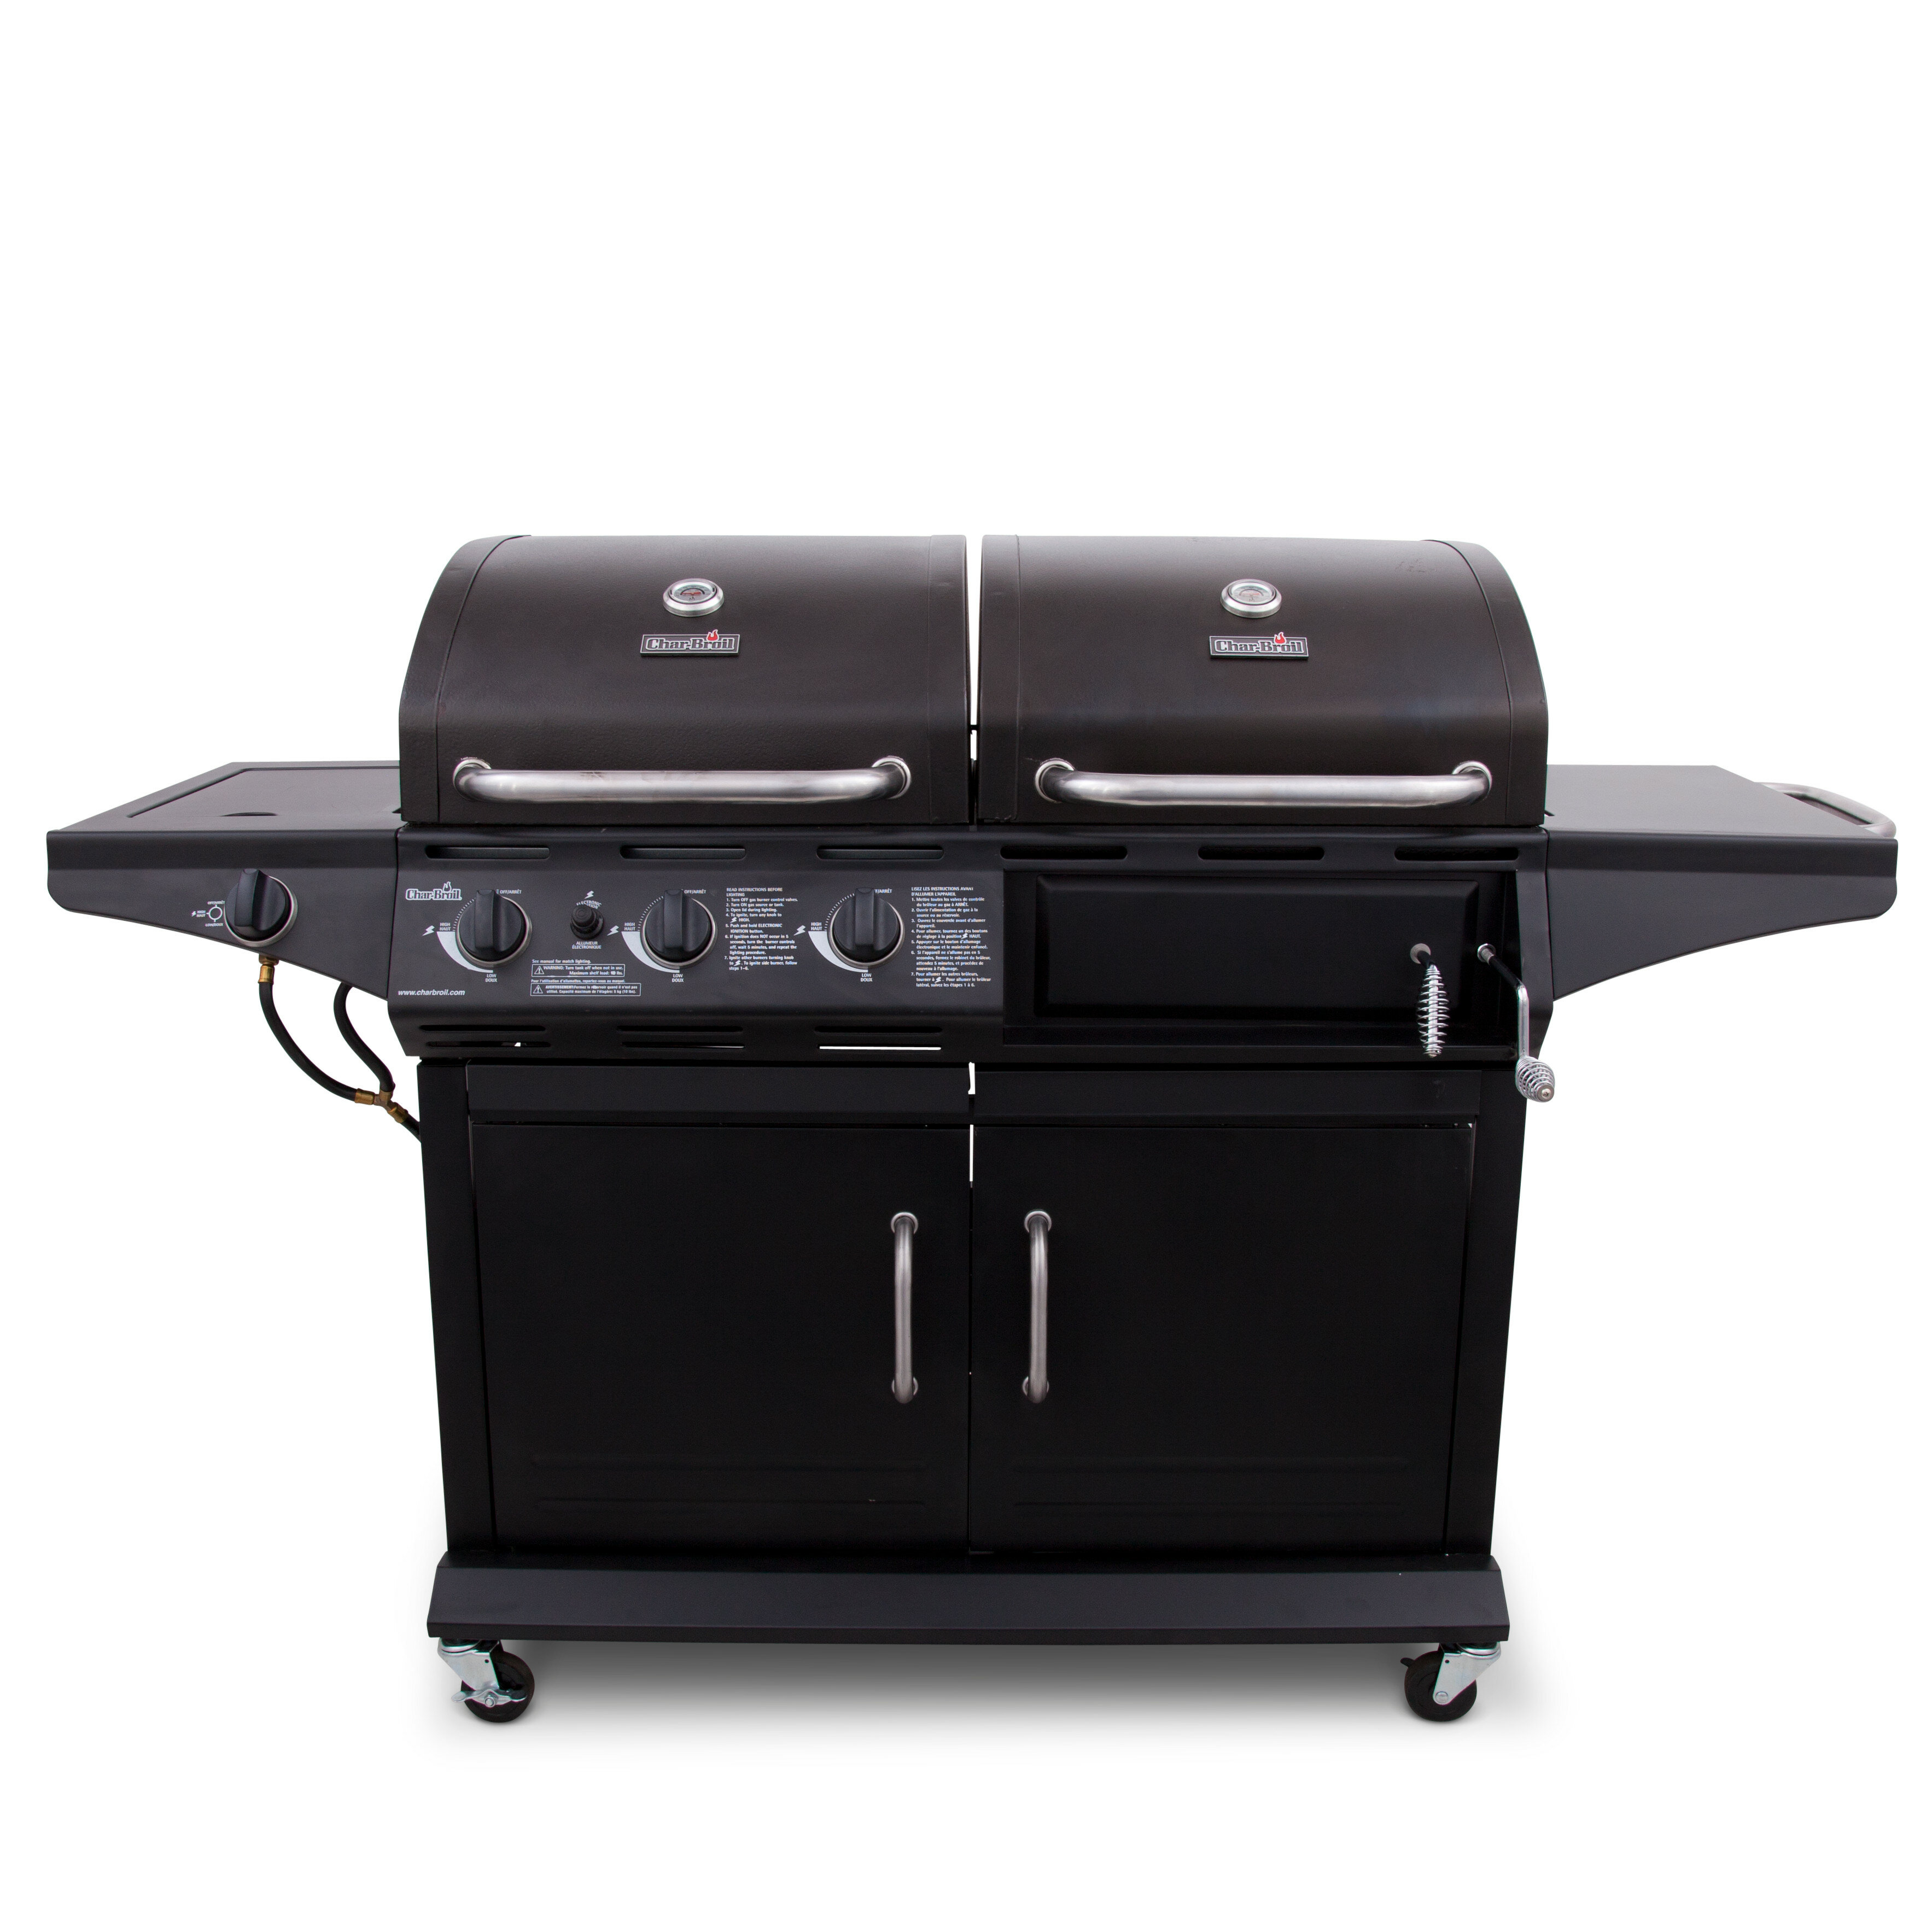 Charbroil Deluxe Combo Charcoal Grill With Side Burner Reviews Wayfair